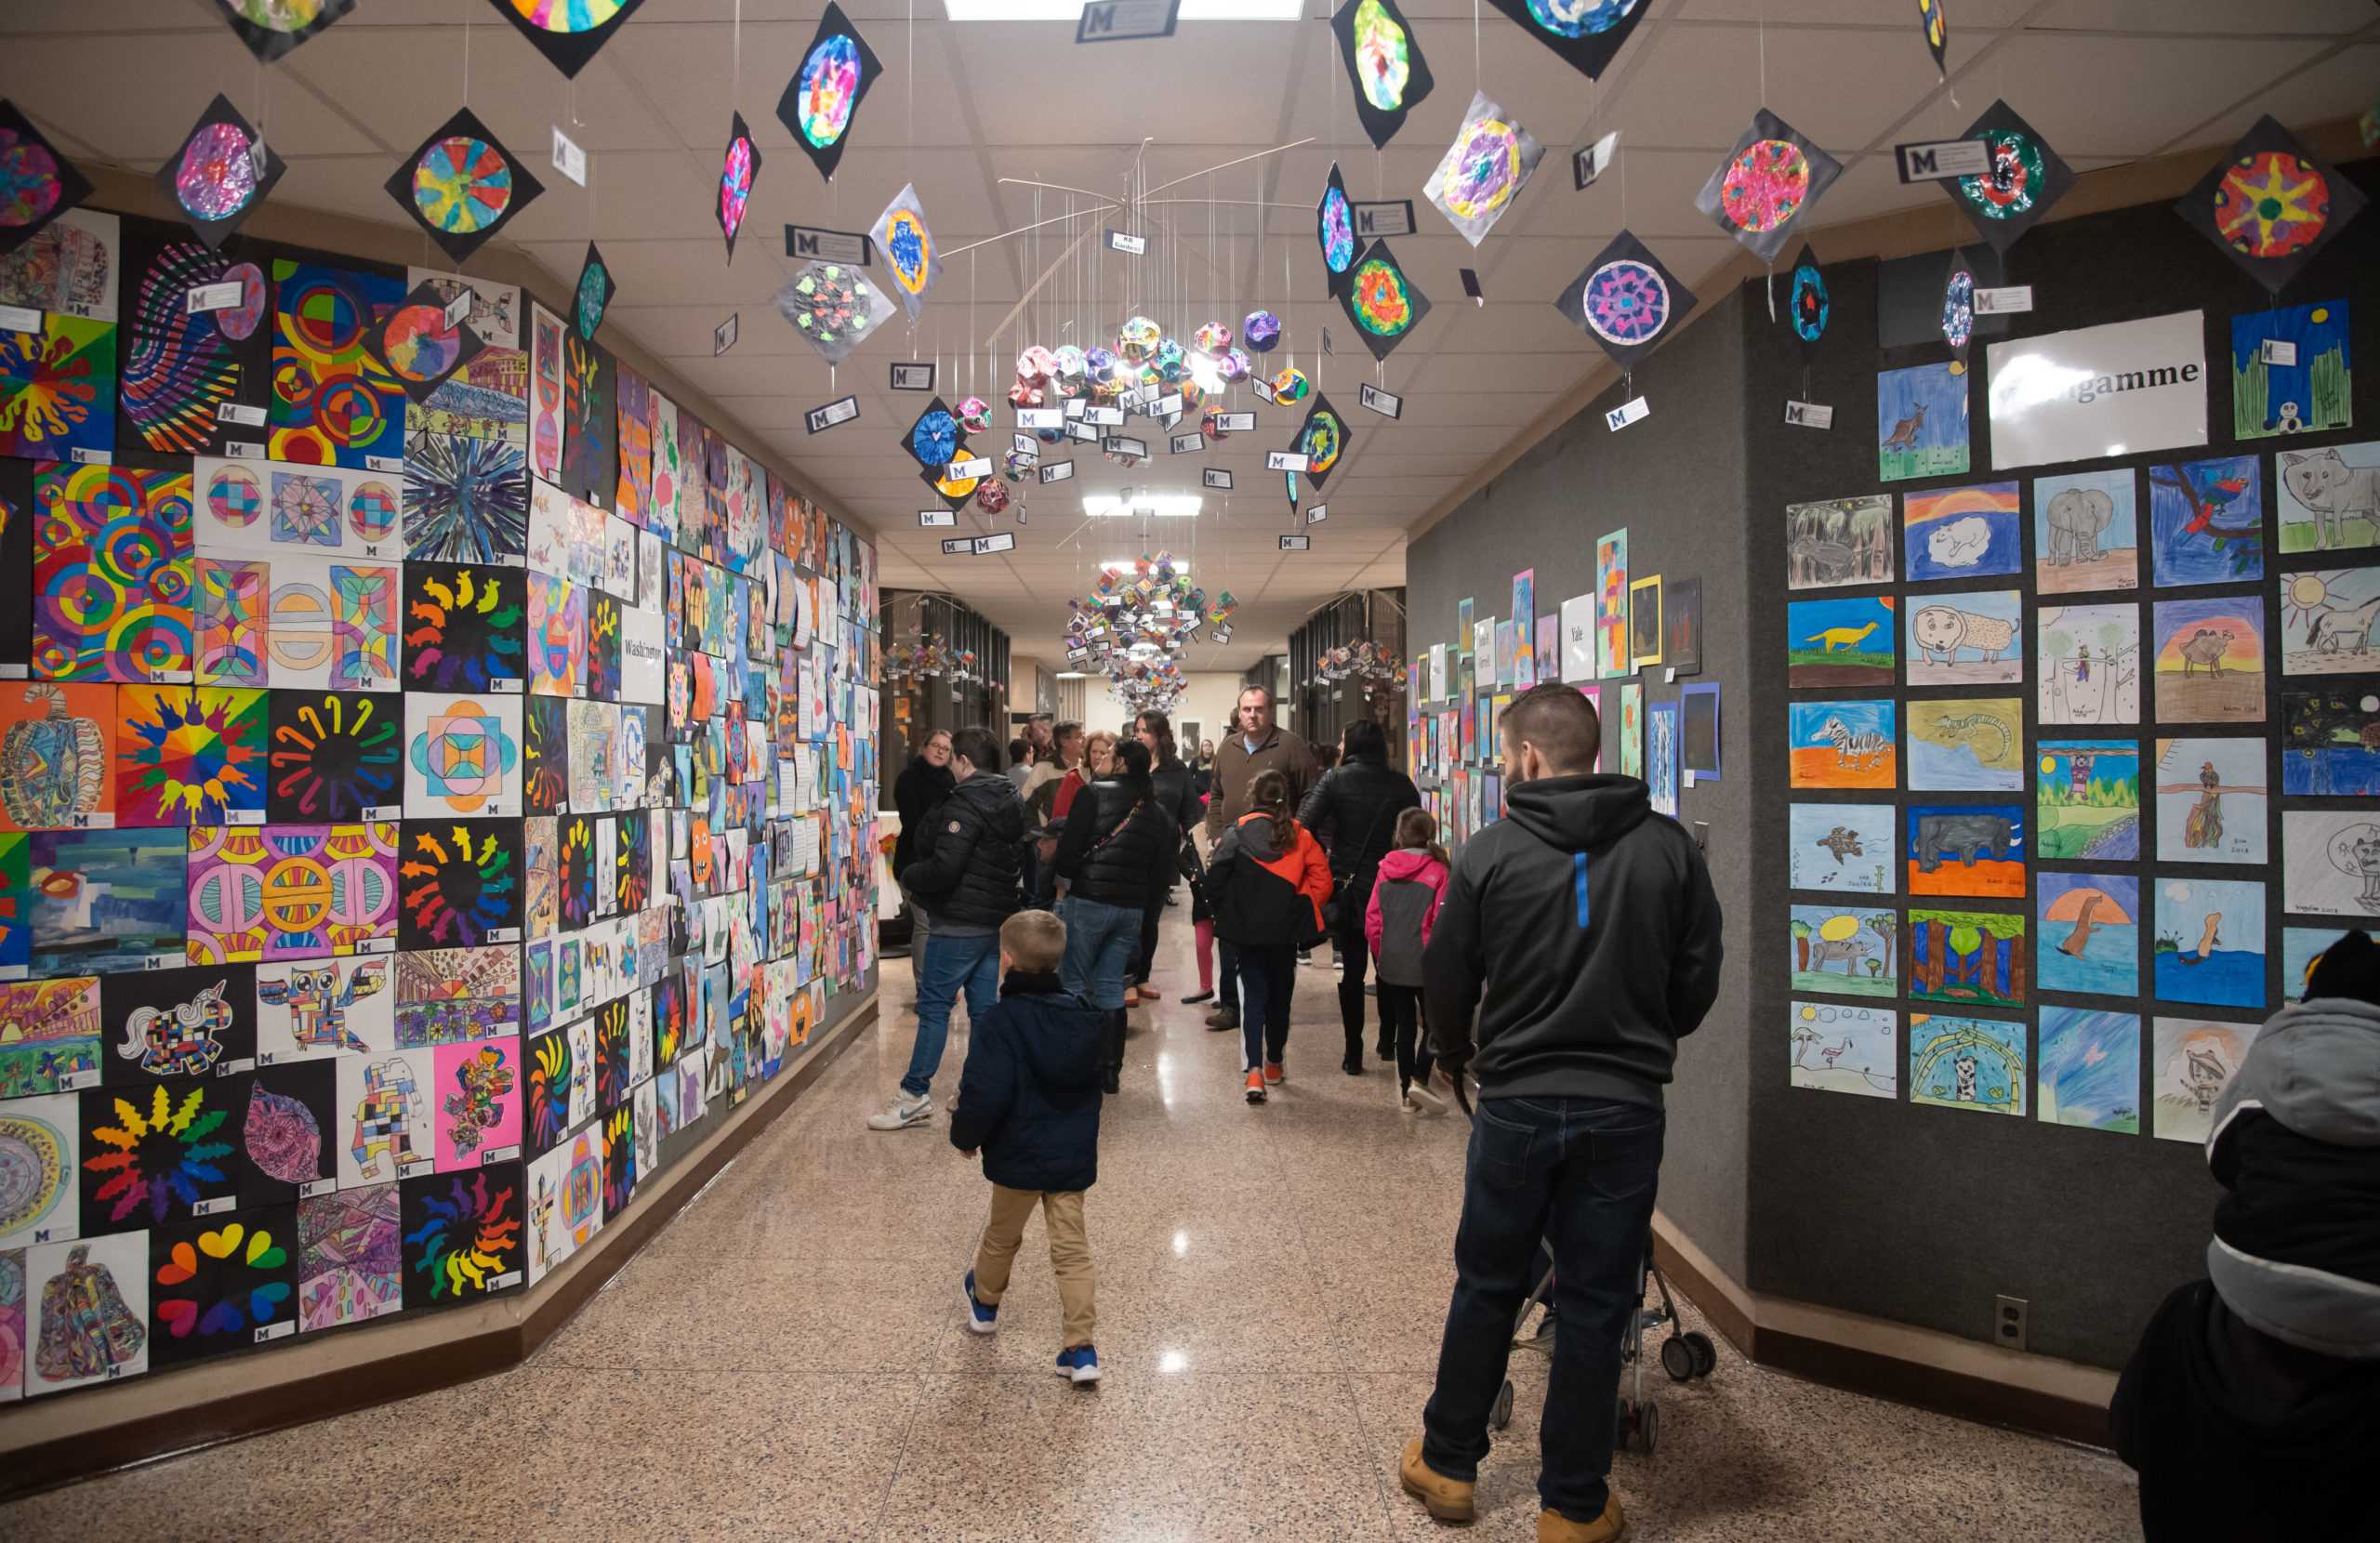 SC4 to present K-12 student art exhibition